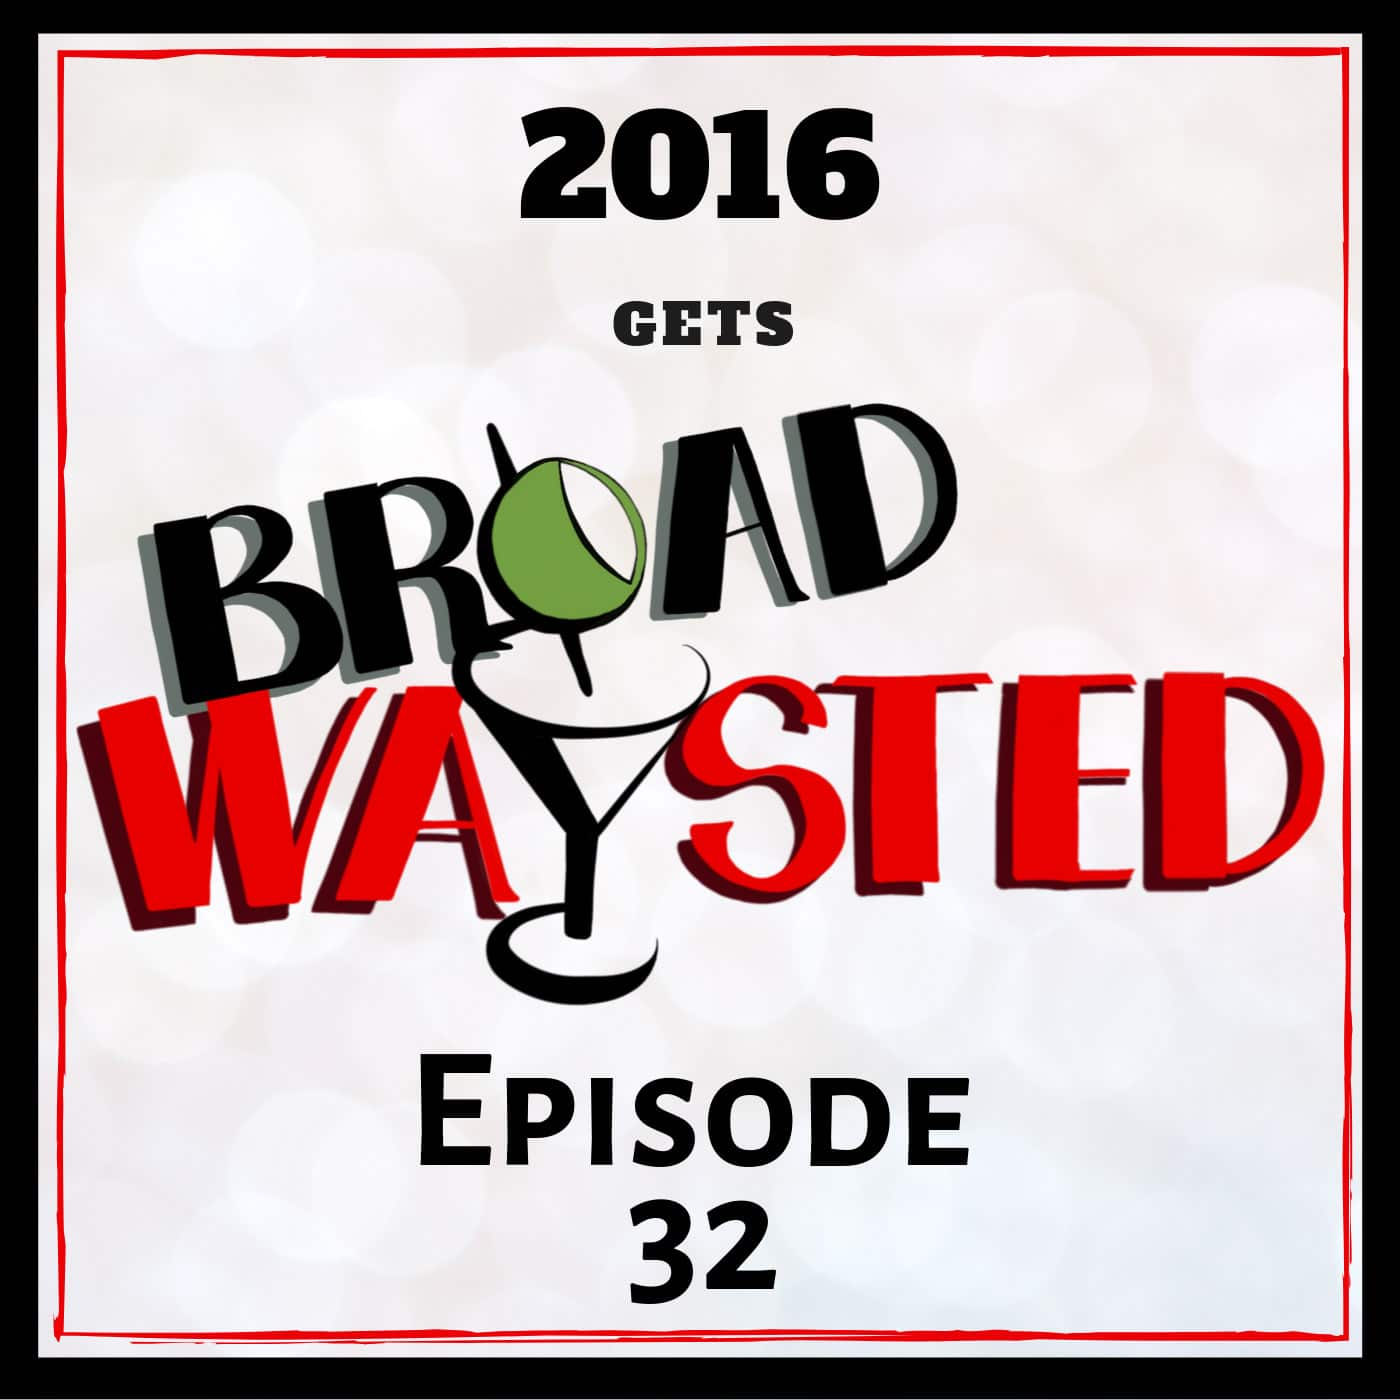 Broadwaysted Ep 32 2016